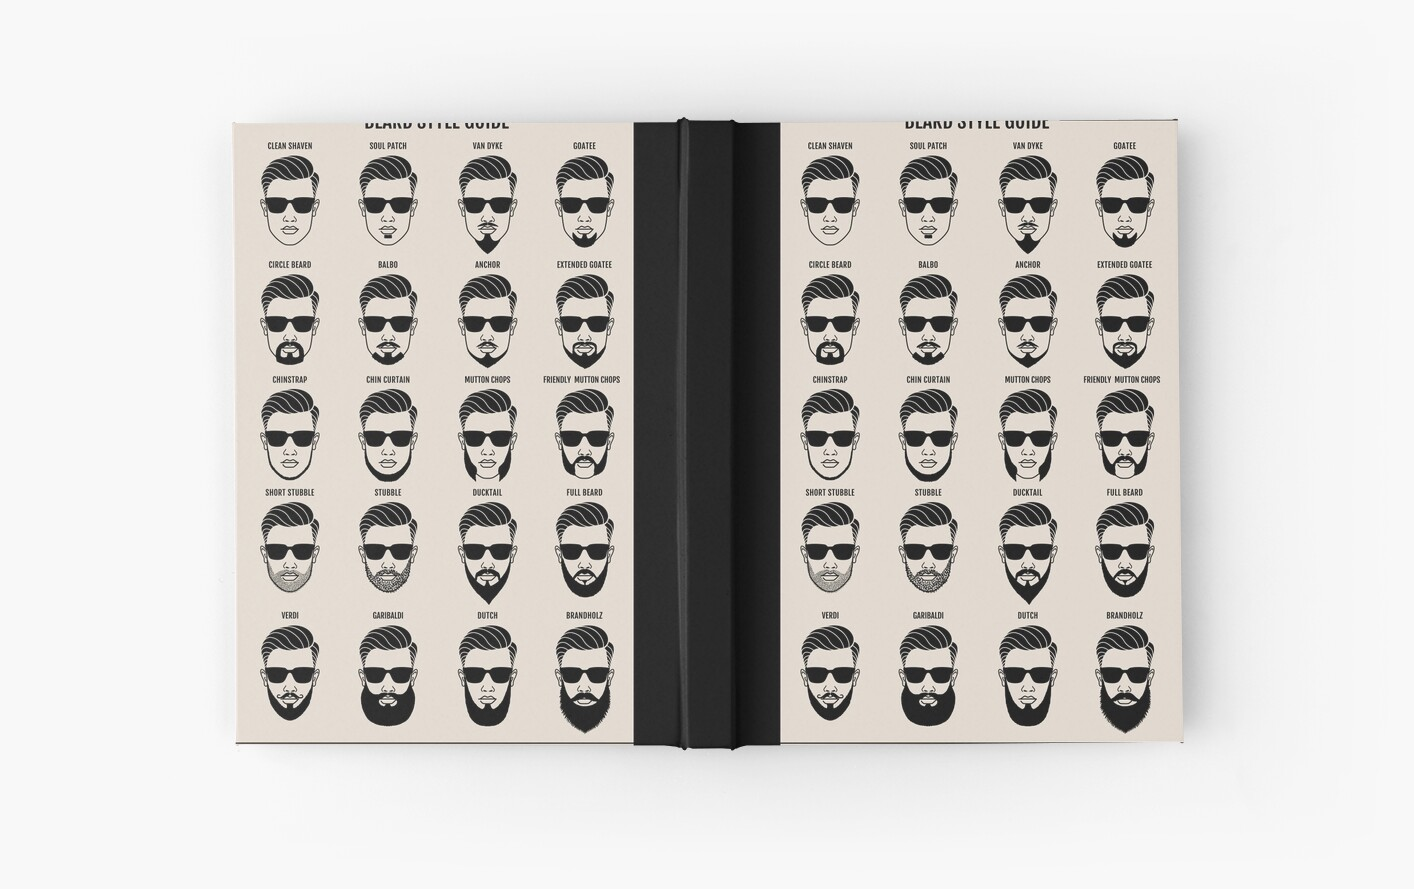 Enjoyable Beard Style Guide Posterquot Hardcover Journals By Beakraus Redbubble Short Hairstyles For Black Women Fulllsitofus